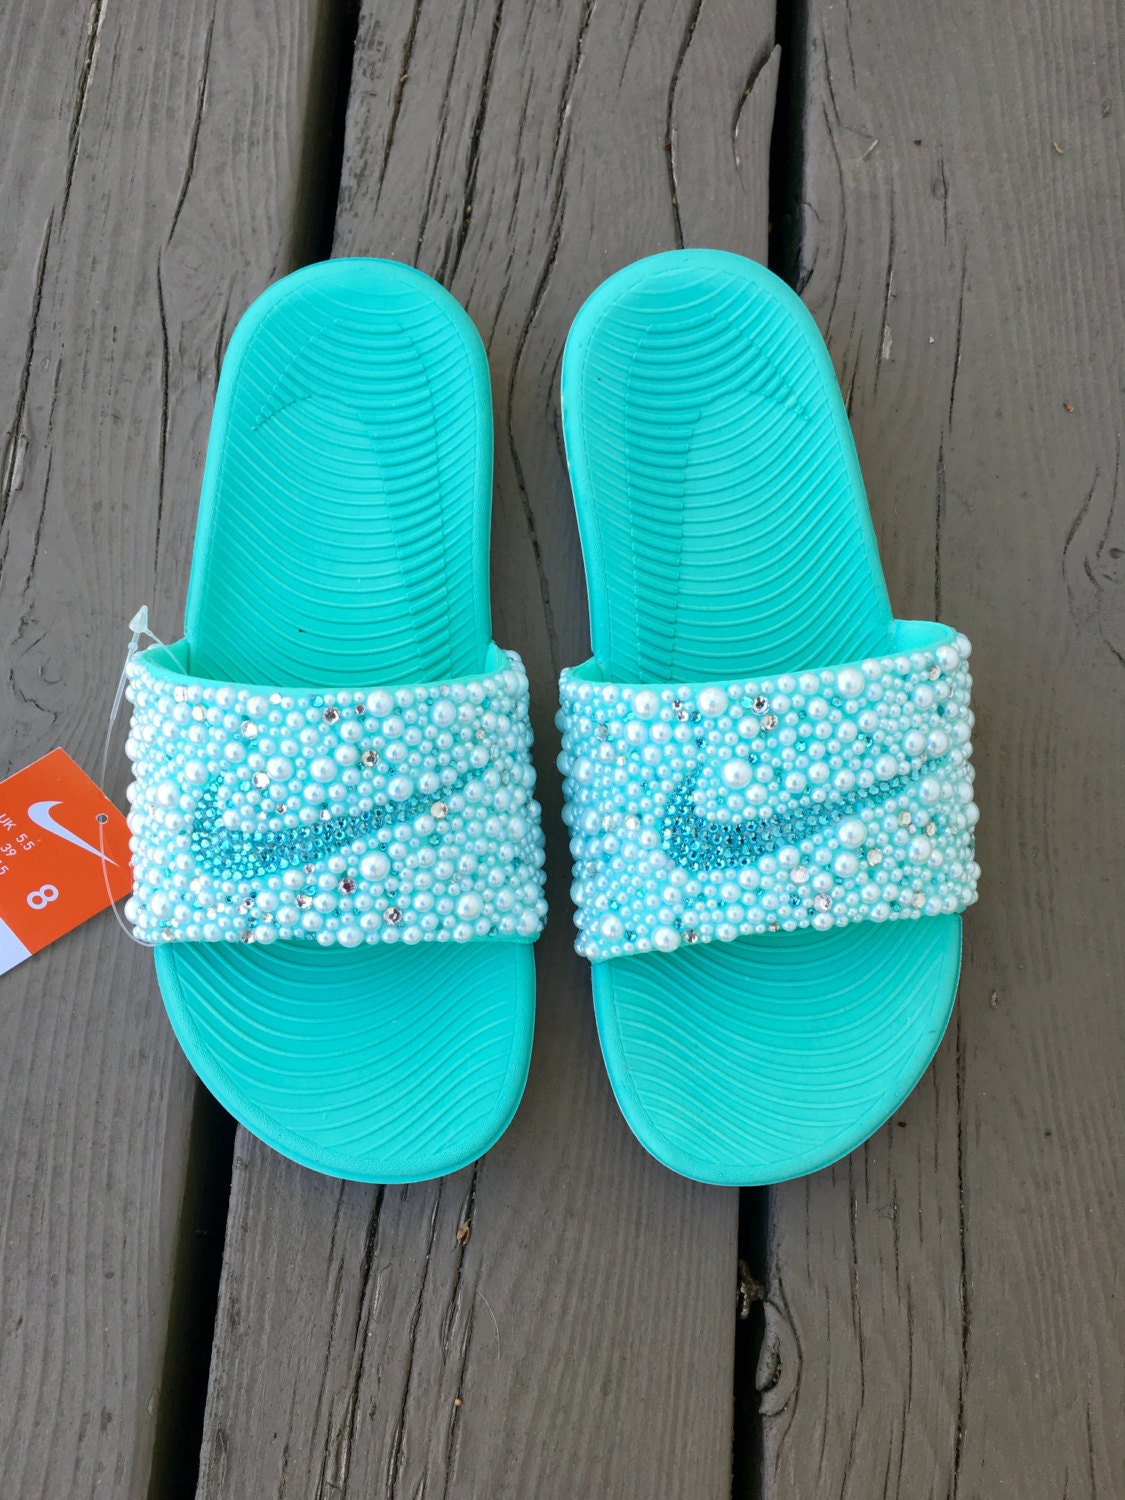 Bedazzled Nike Slides